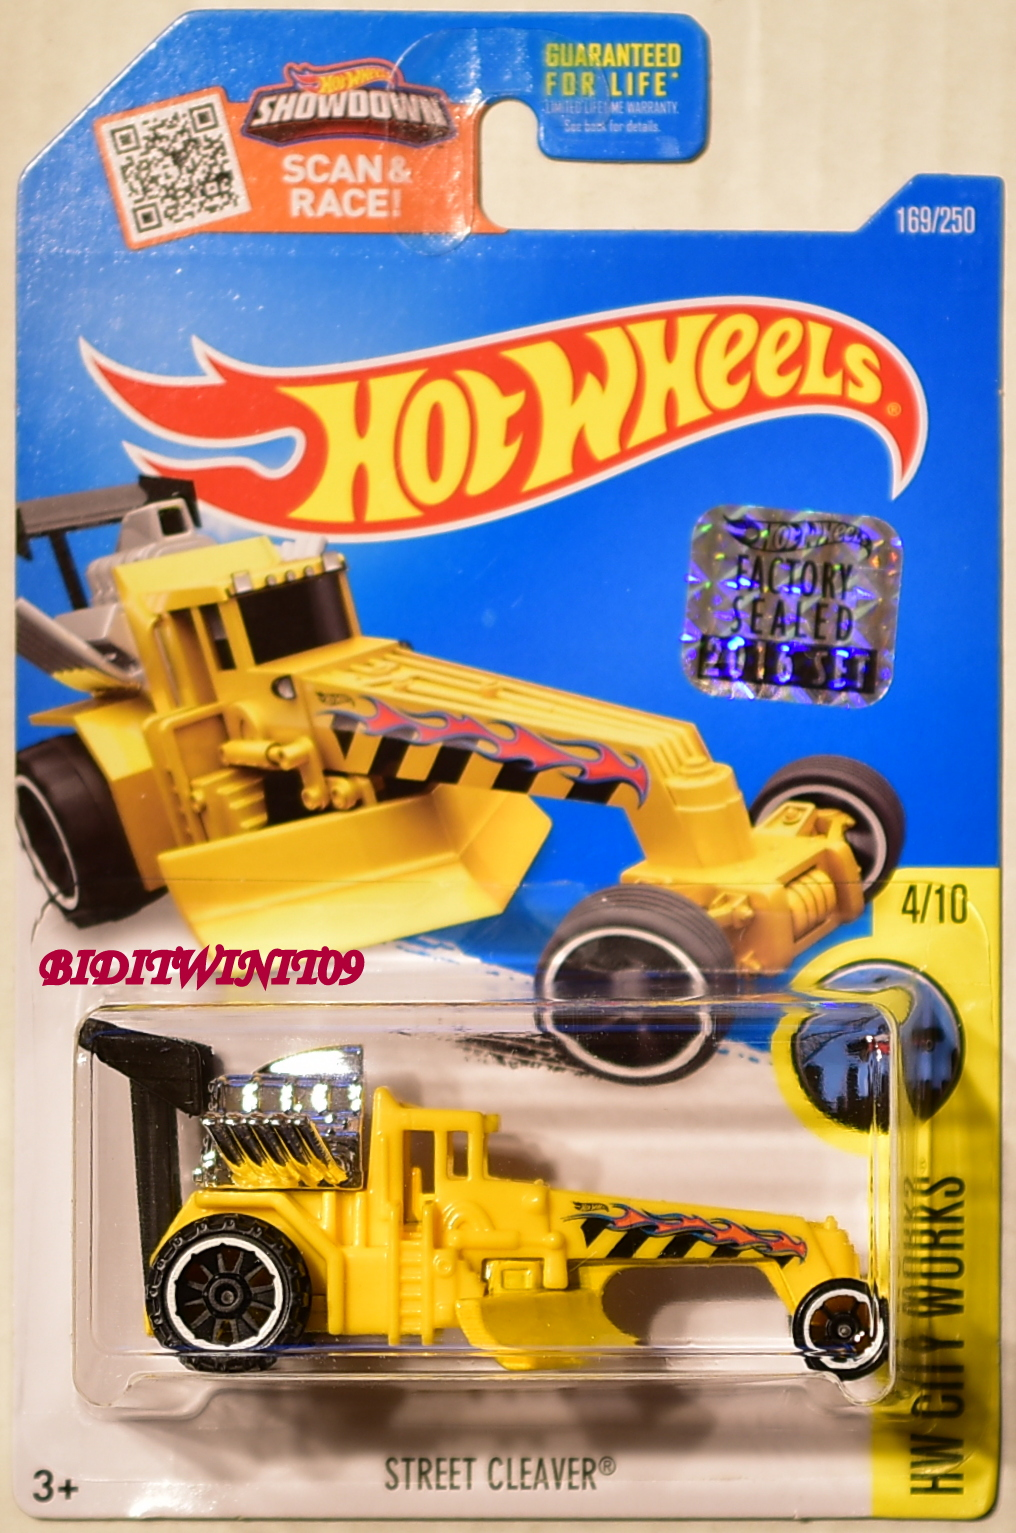 HOT WHEELS 2016 HW CITY WORKS STREET CLEAVER #4/10 YELLOW FACTORY SEALED